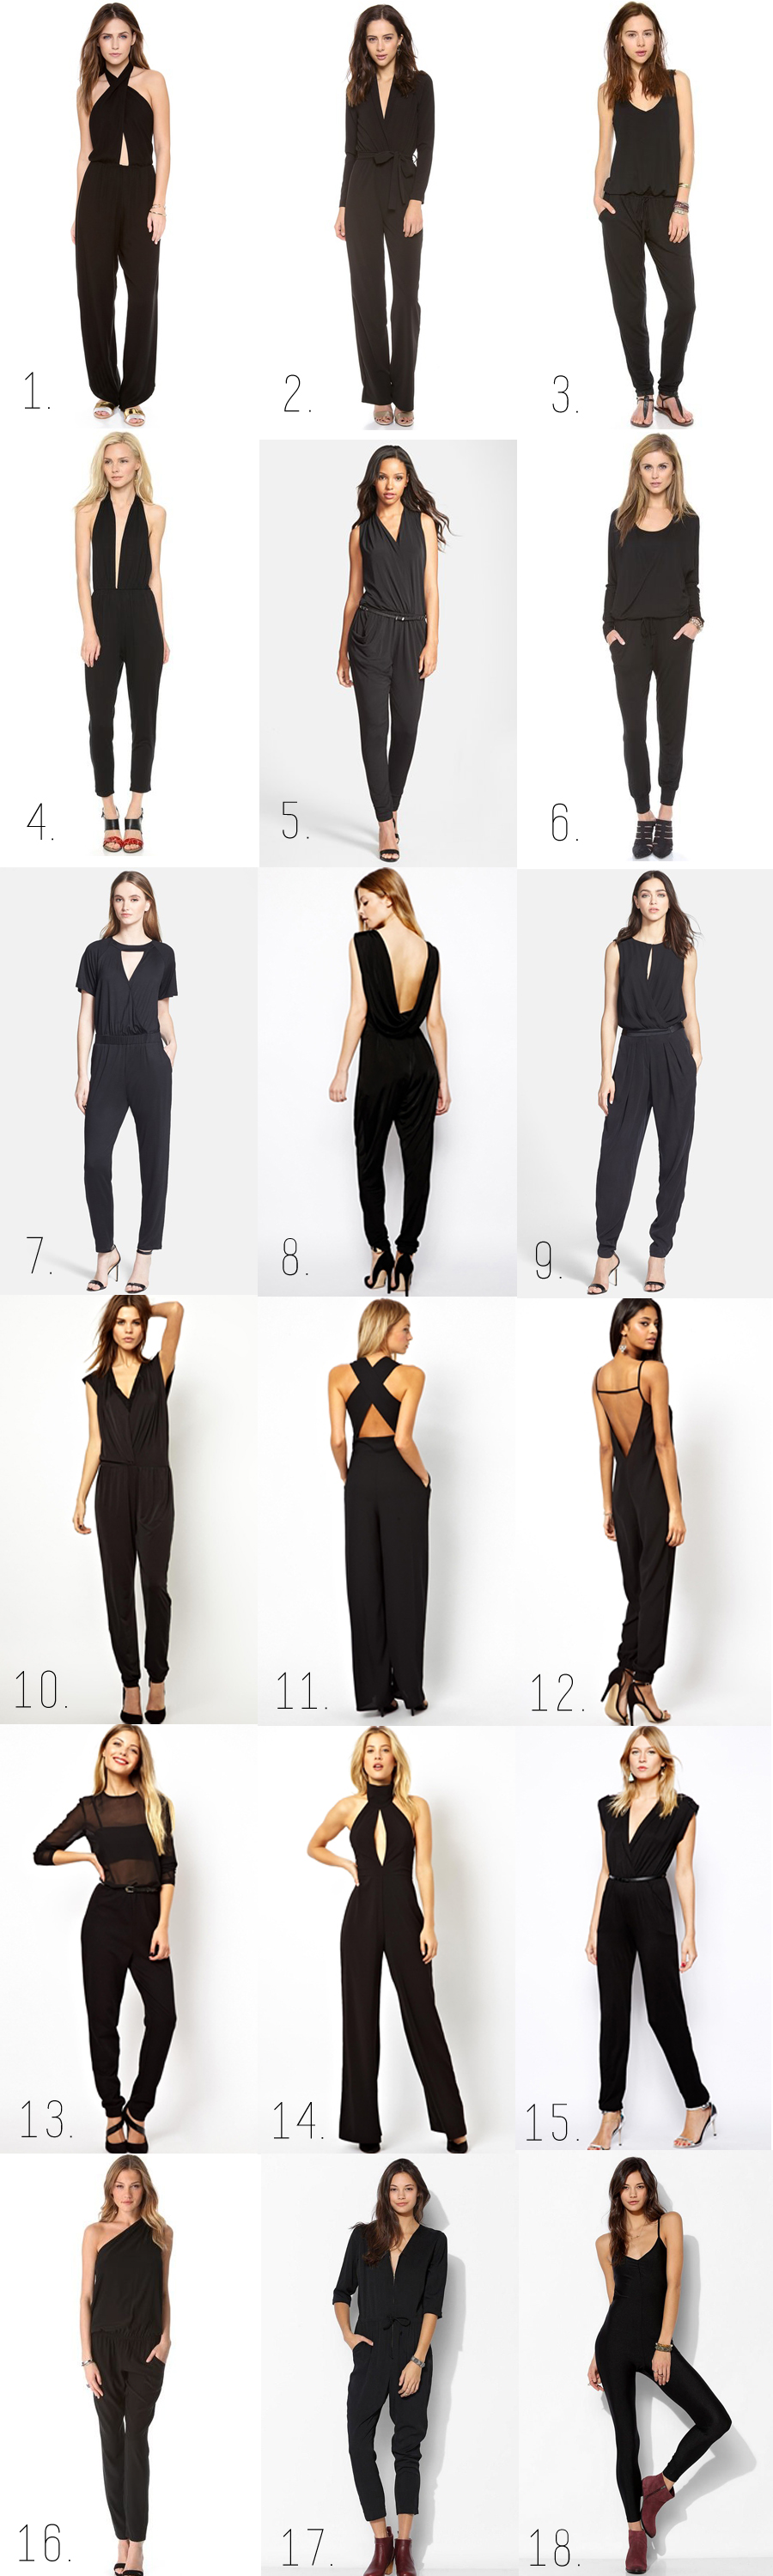 excuse-my-blog-jump-suits-so-many-kinds-2